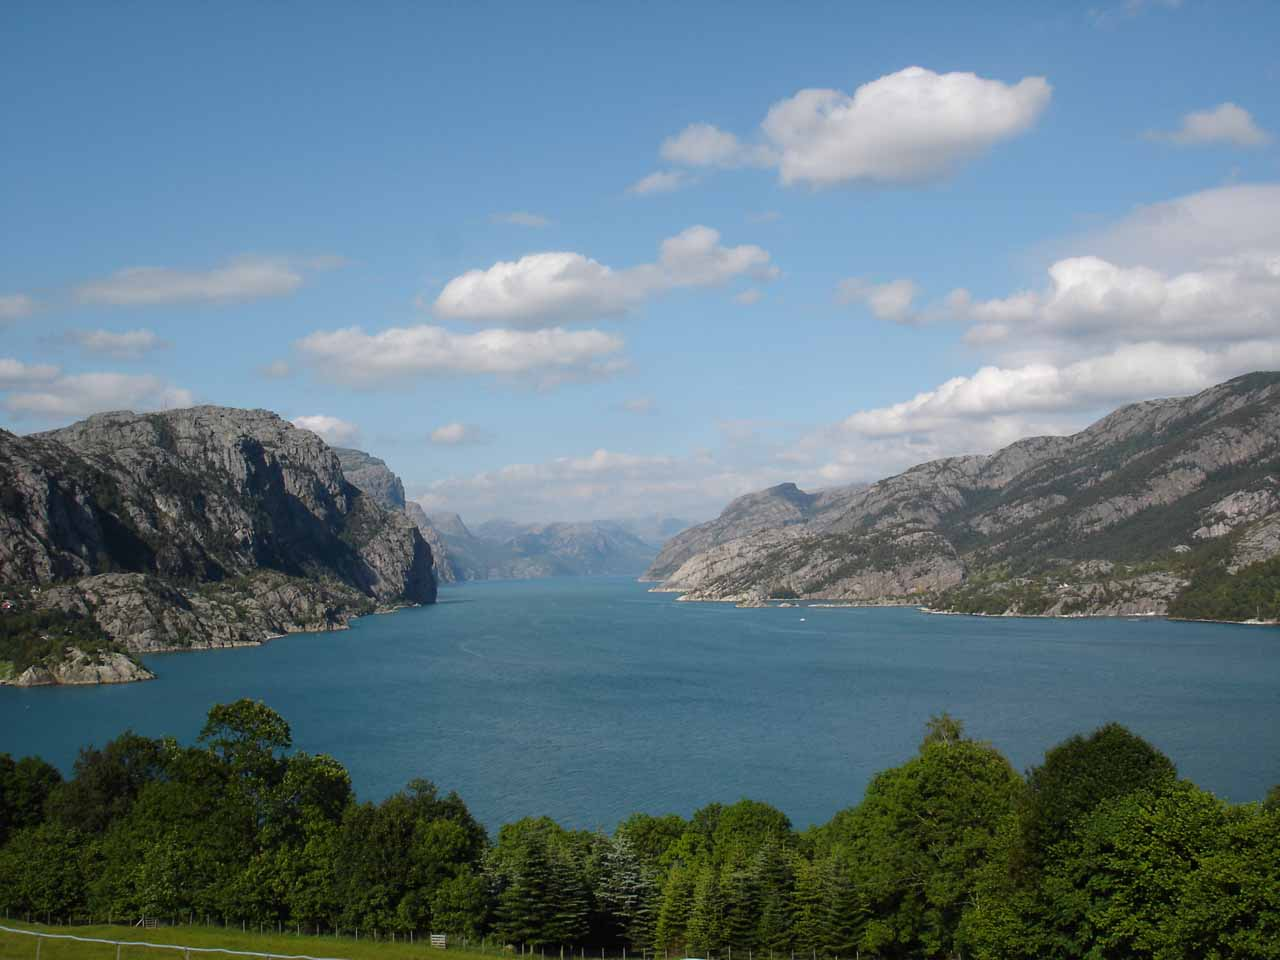 Near Stavanger was the Lysefjord (Light Fjord), which featured the well-known attractions the Preikestolen (the pulpit) and Kjeragbolten.  Unfortunately, we visited neither of them